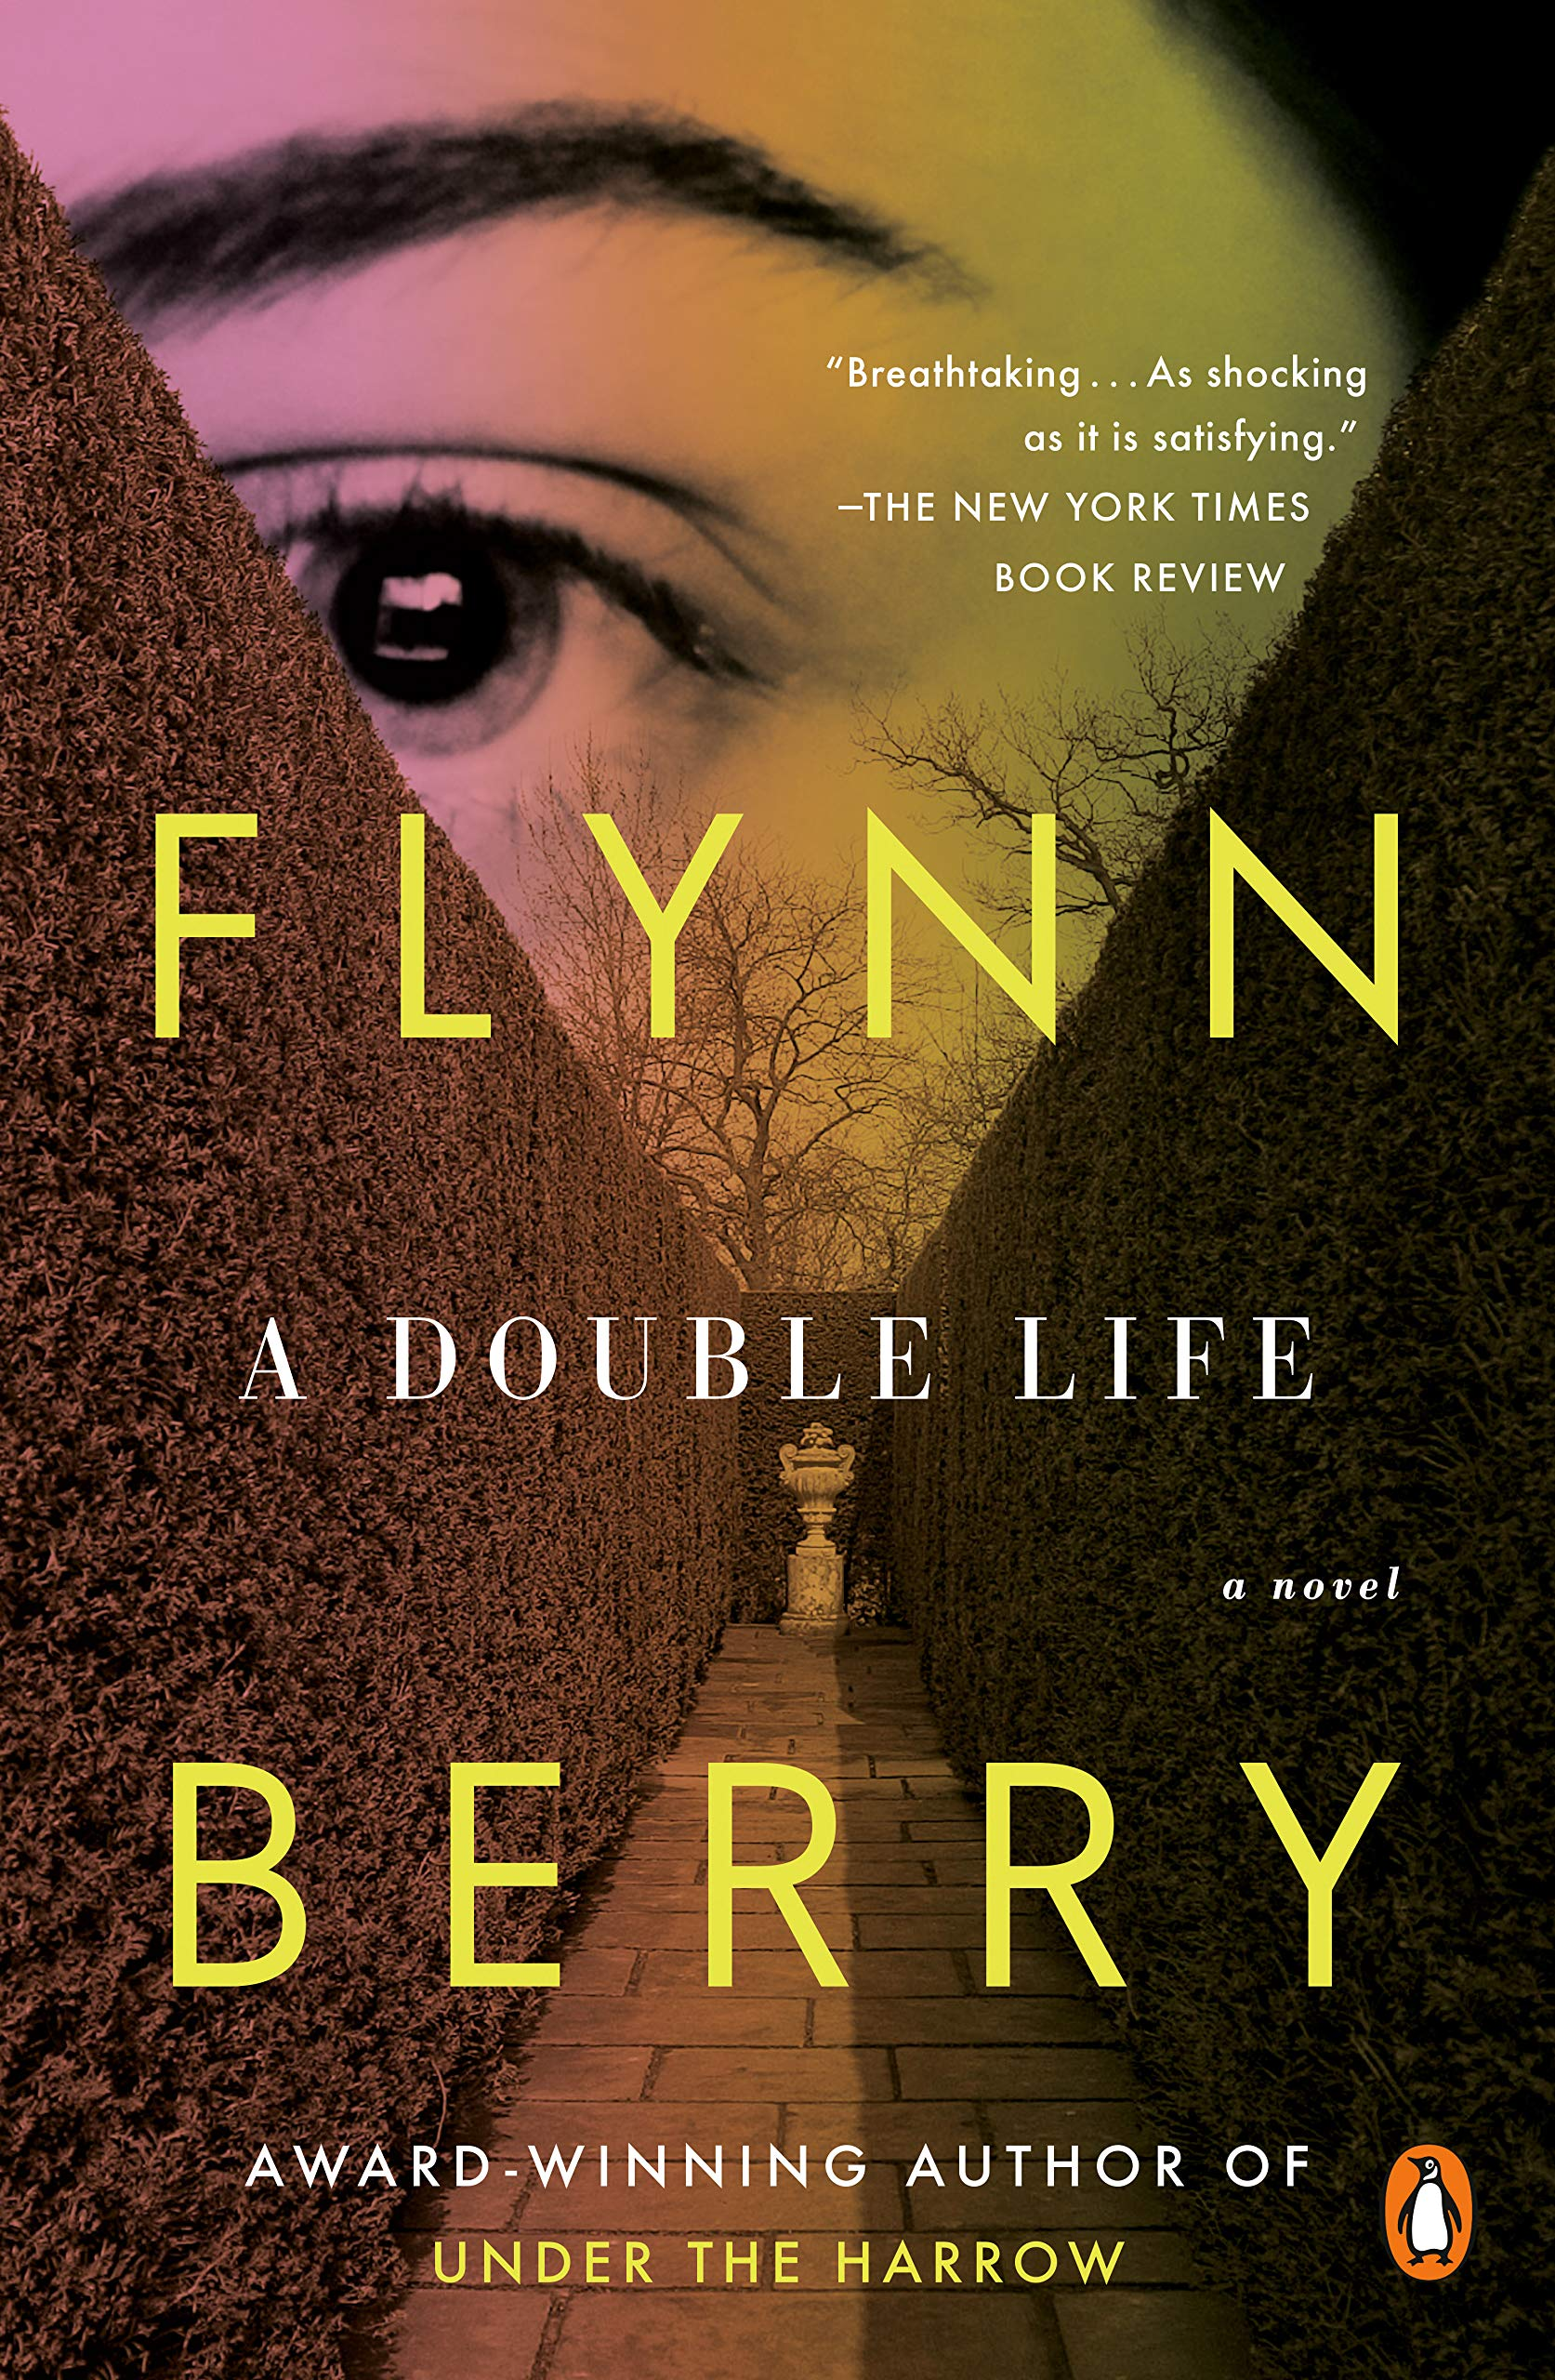 Image result for a double life flynn berry